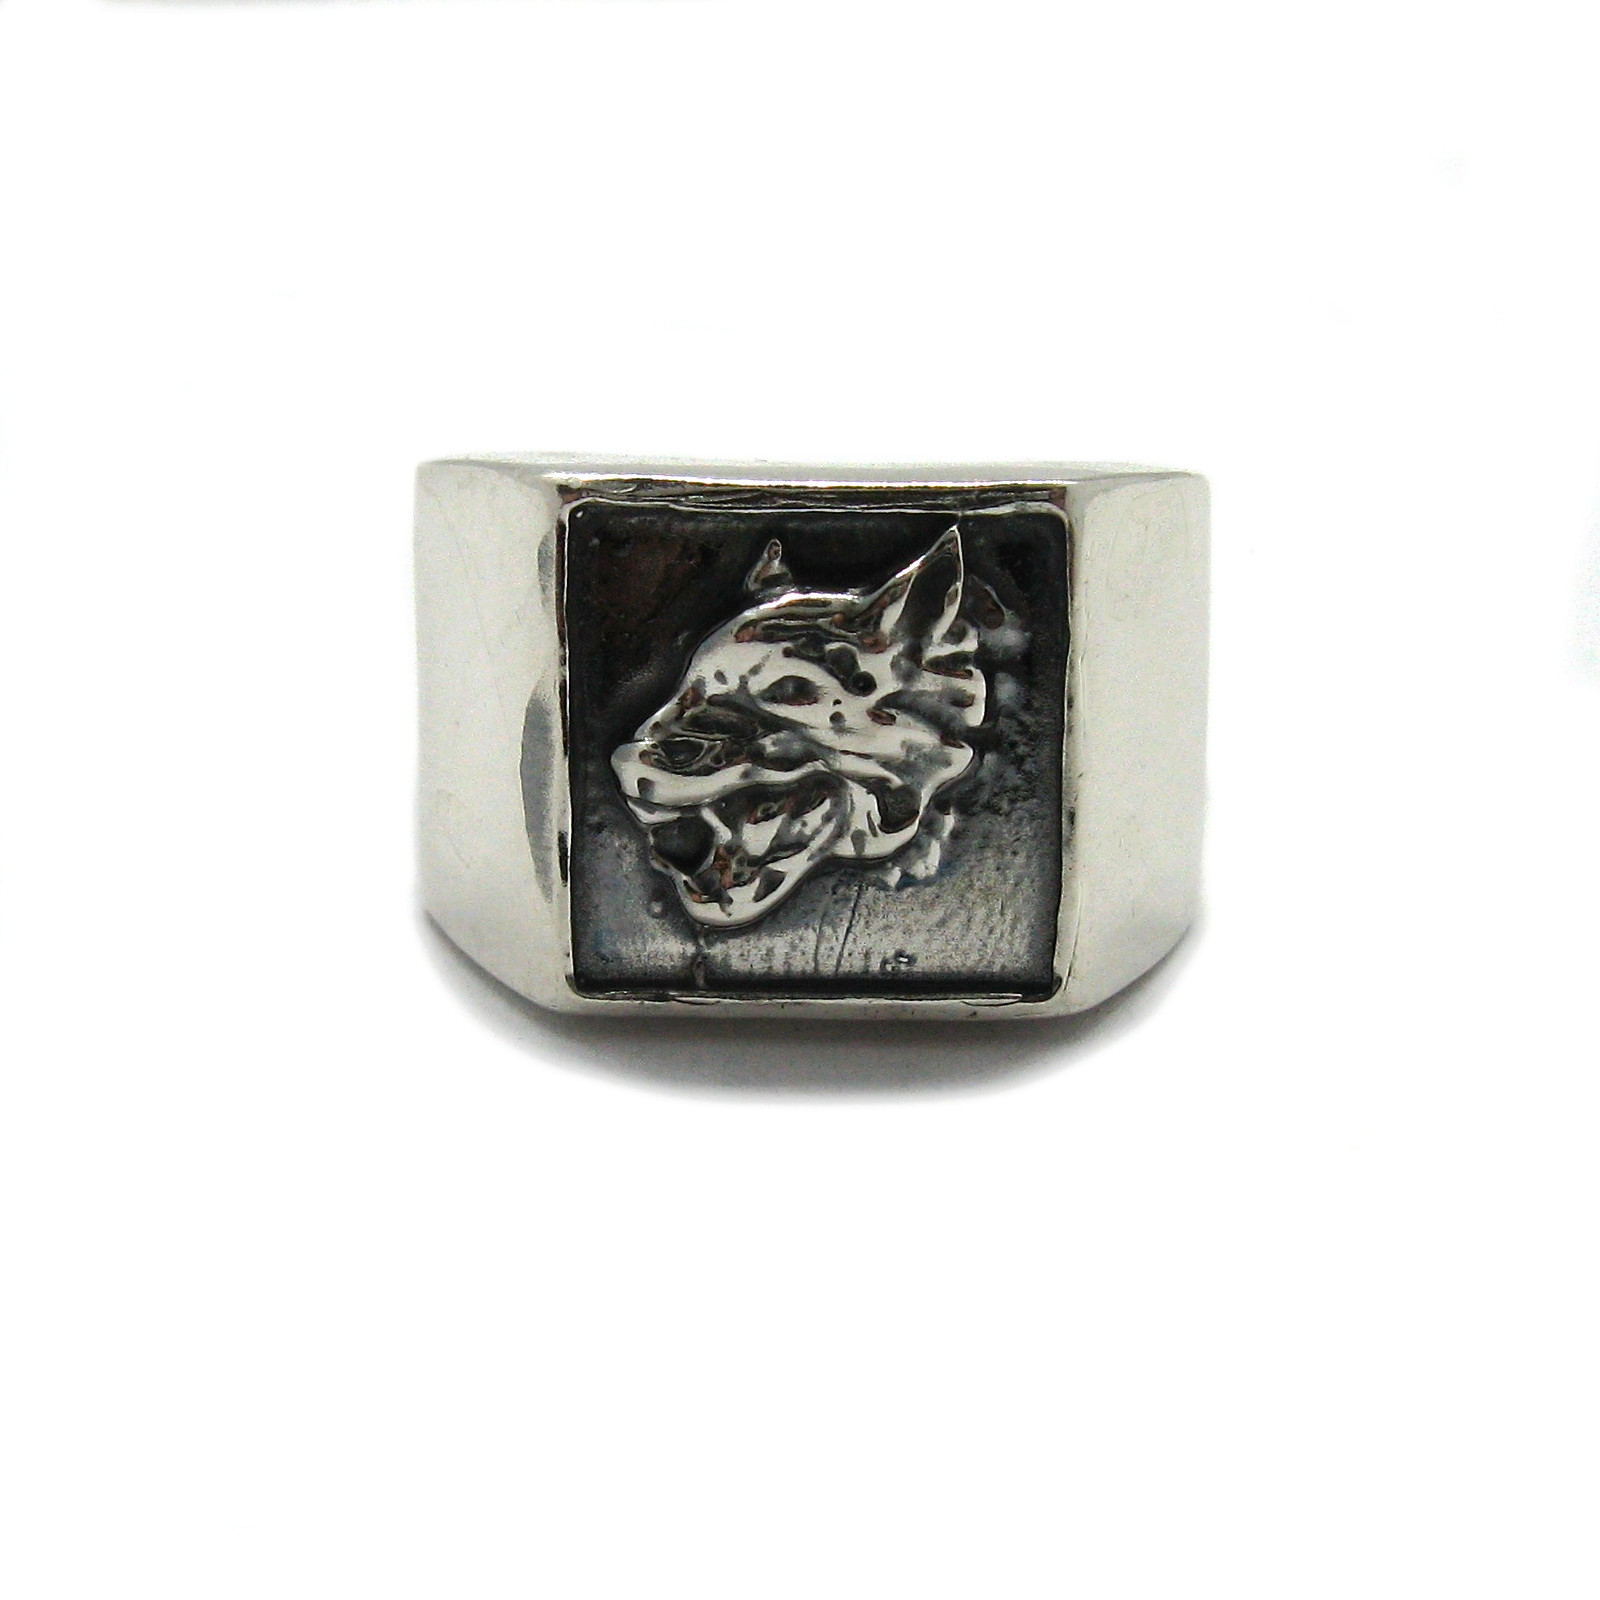 Silver ring - R001883